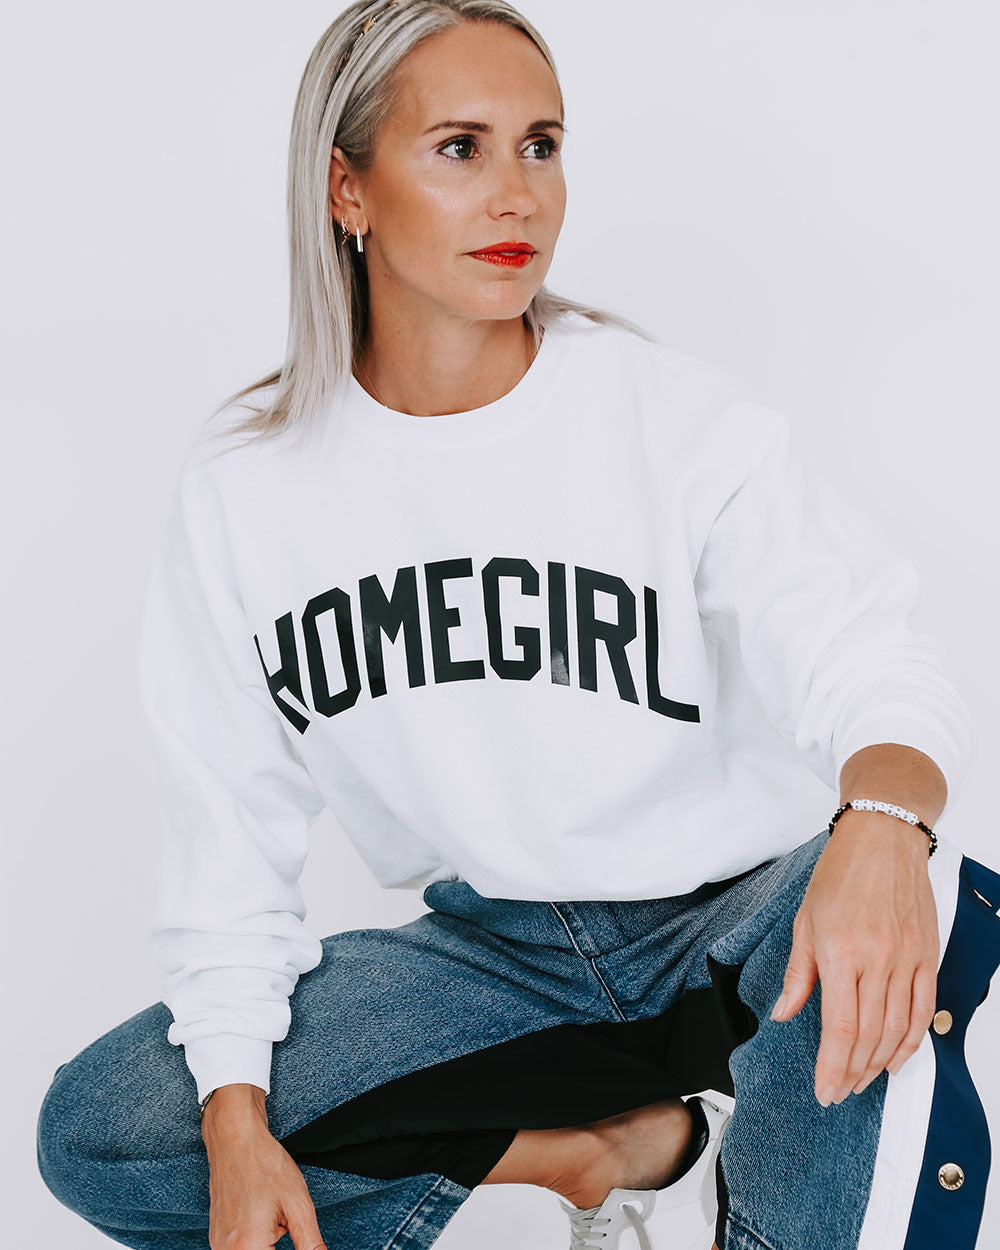 UHF Homegirl Sweatshirt - White